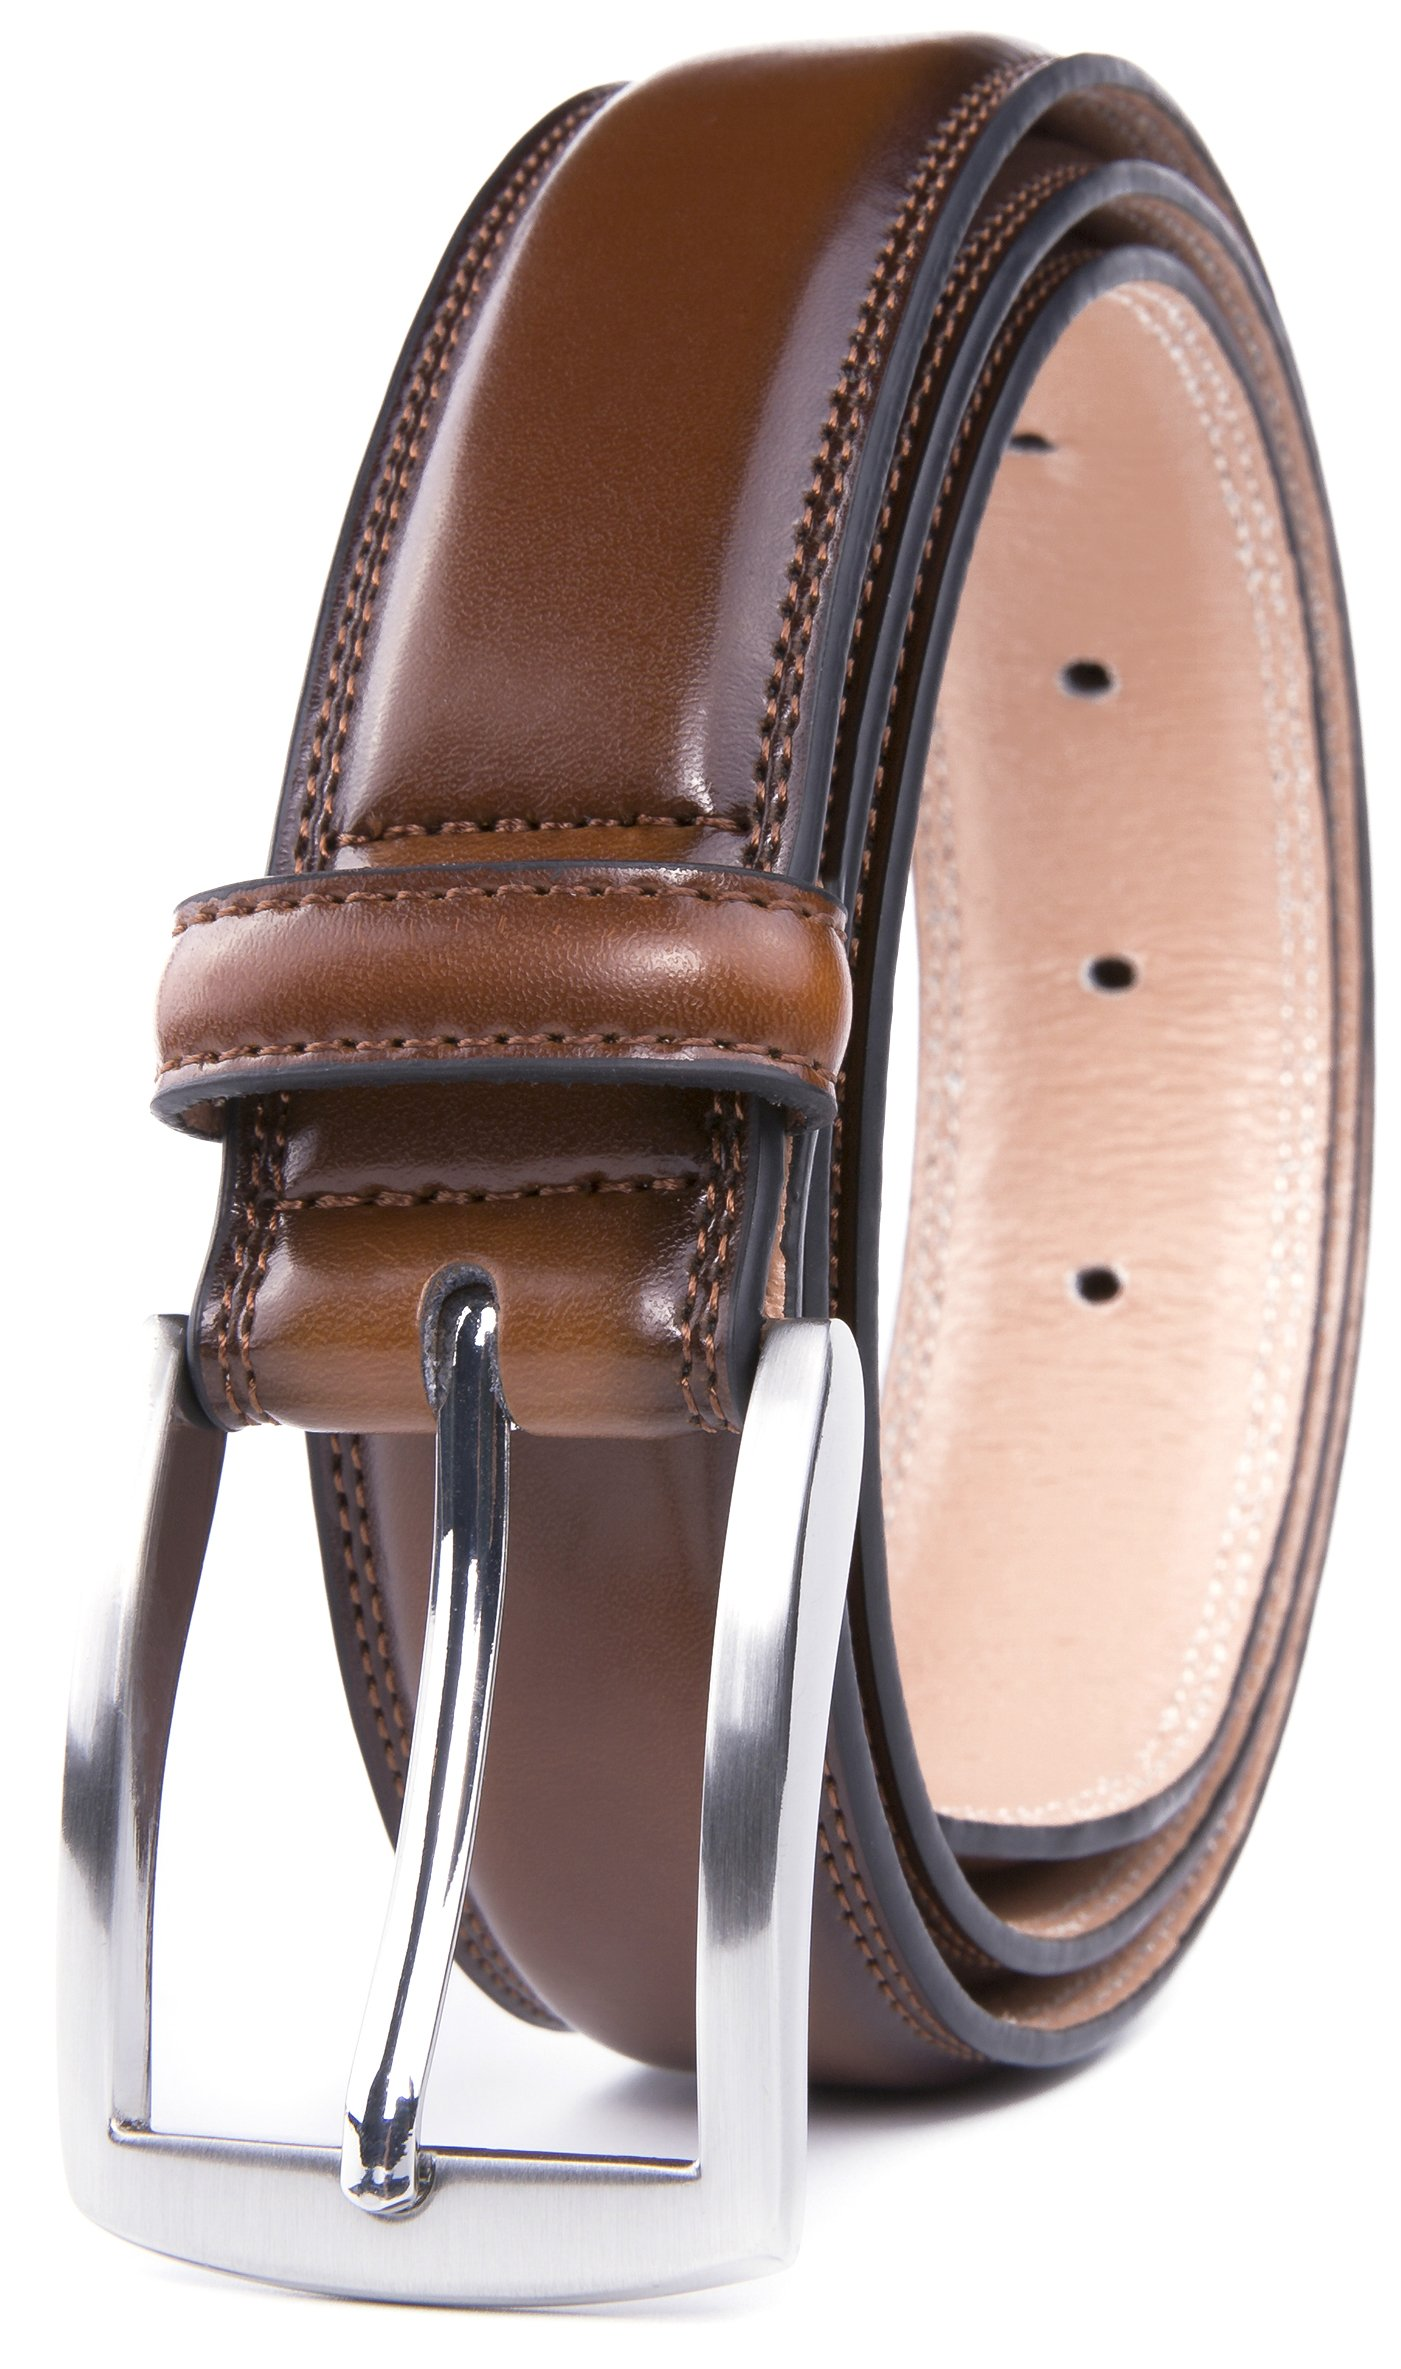 Men's Belt, Classic and Fashion Designs for Work Business and Casual, Regular Big & Tall Sizes Handmade Genuine Leather, Black White Brown Wine Navy Tan (38, Burnt Umber)